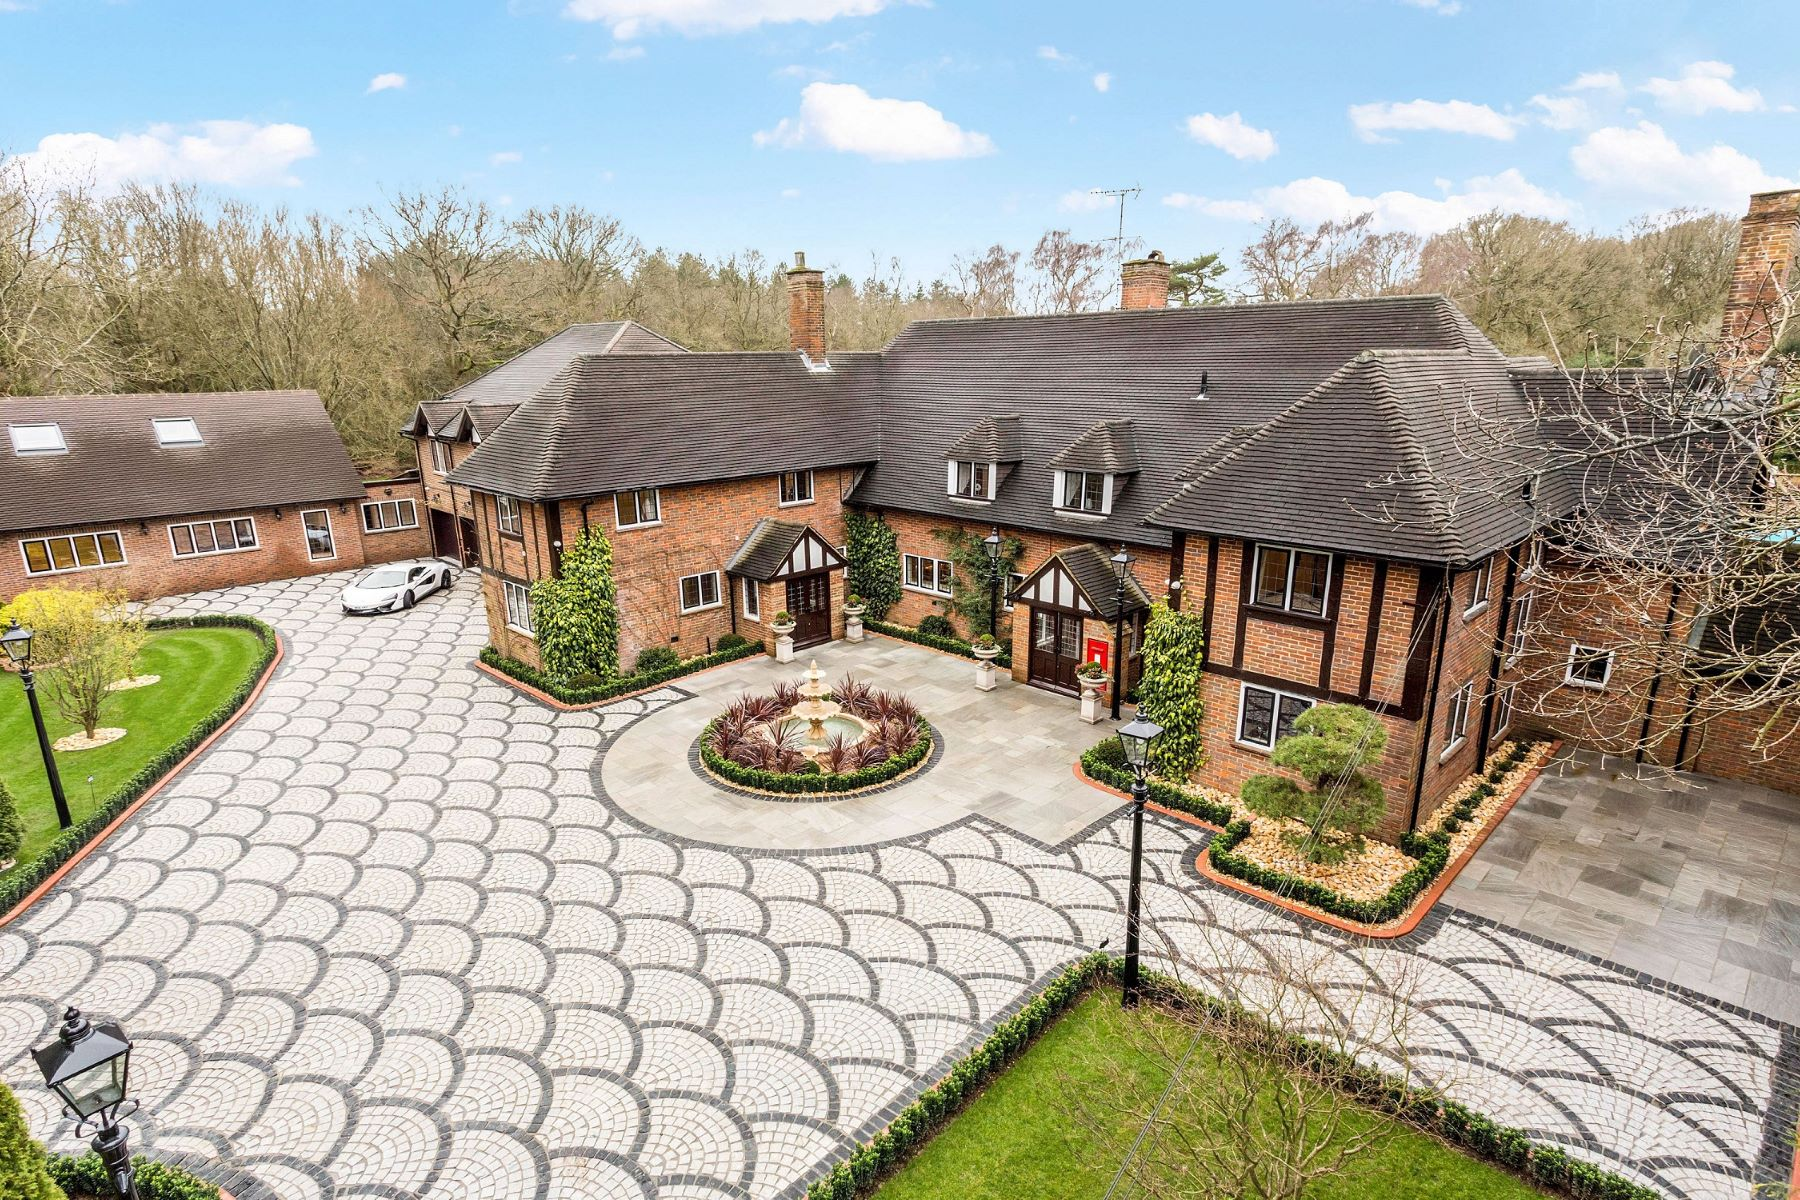 Single Family Homes for Sale at Chalfont Manor Nightingales Lane Chalfont St Giles, England HP8 4SN United Kingdom